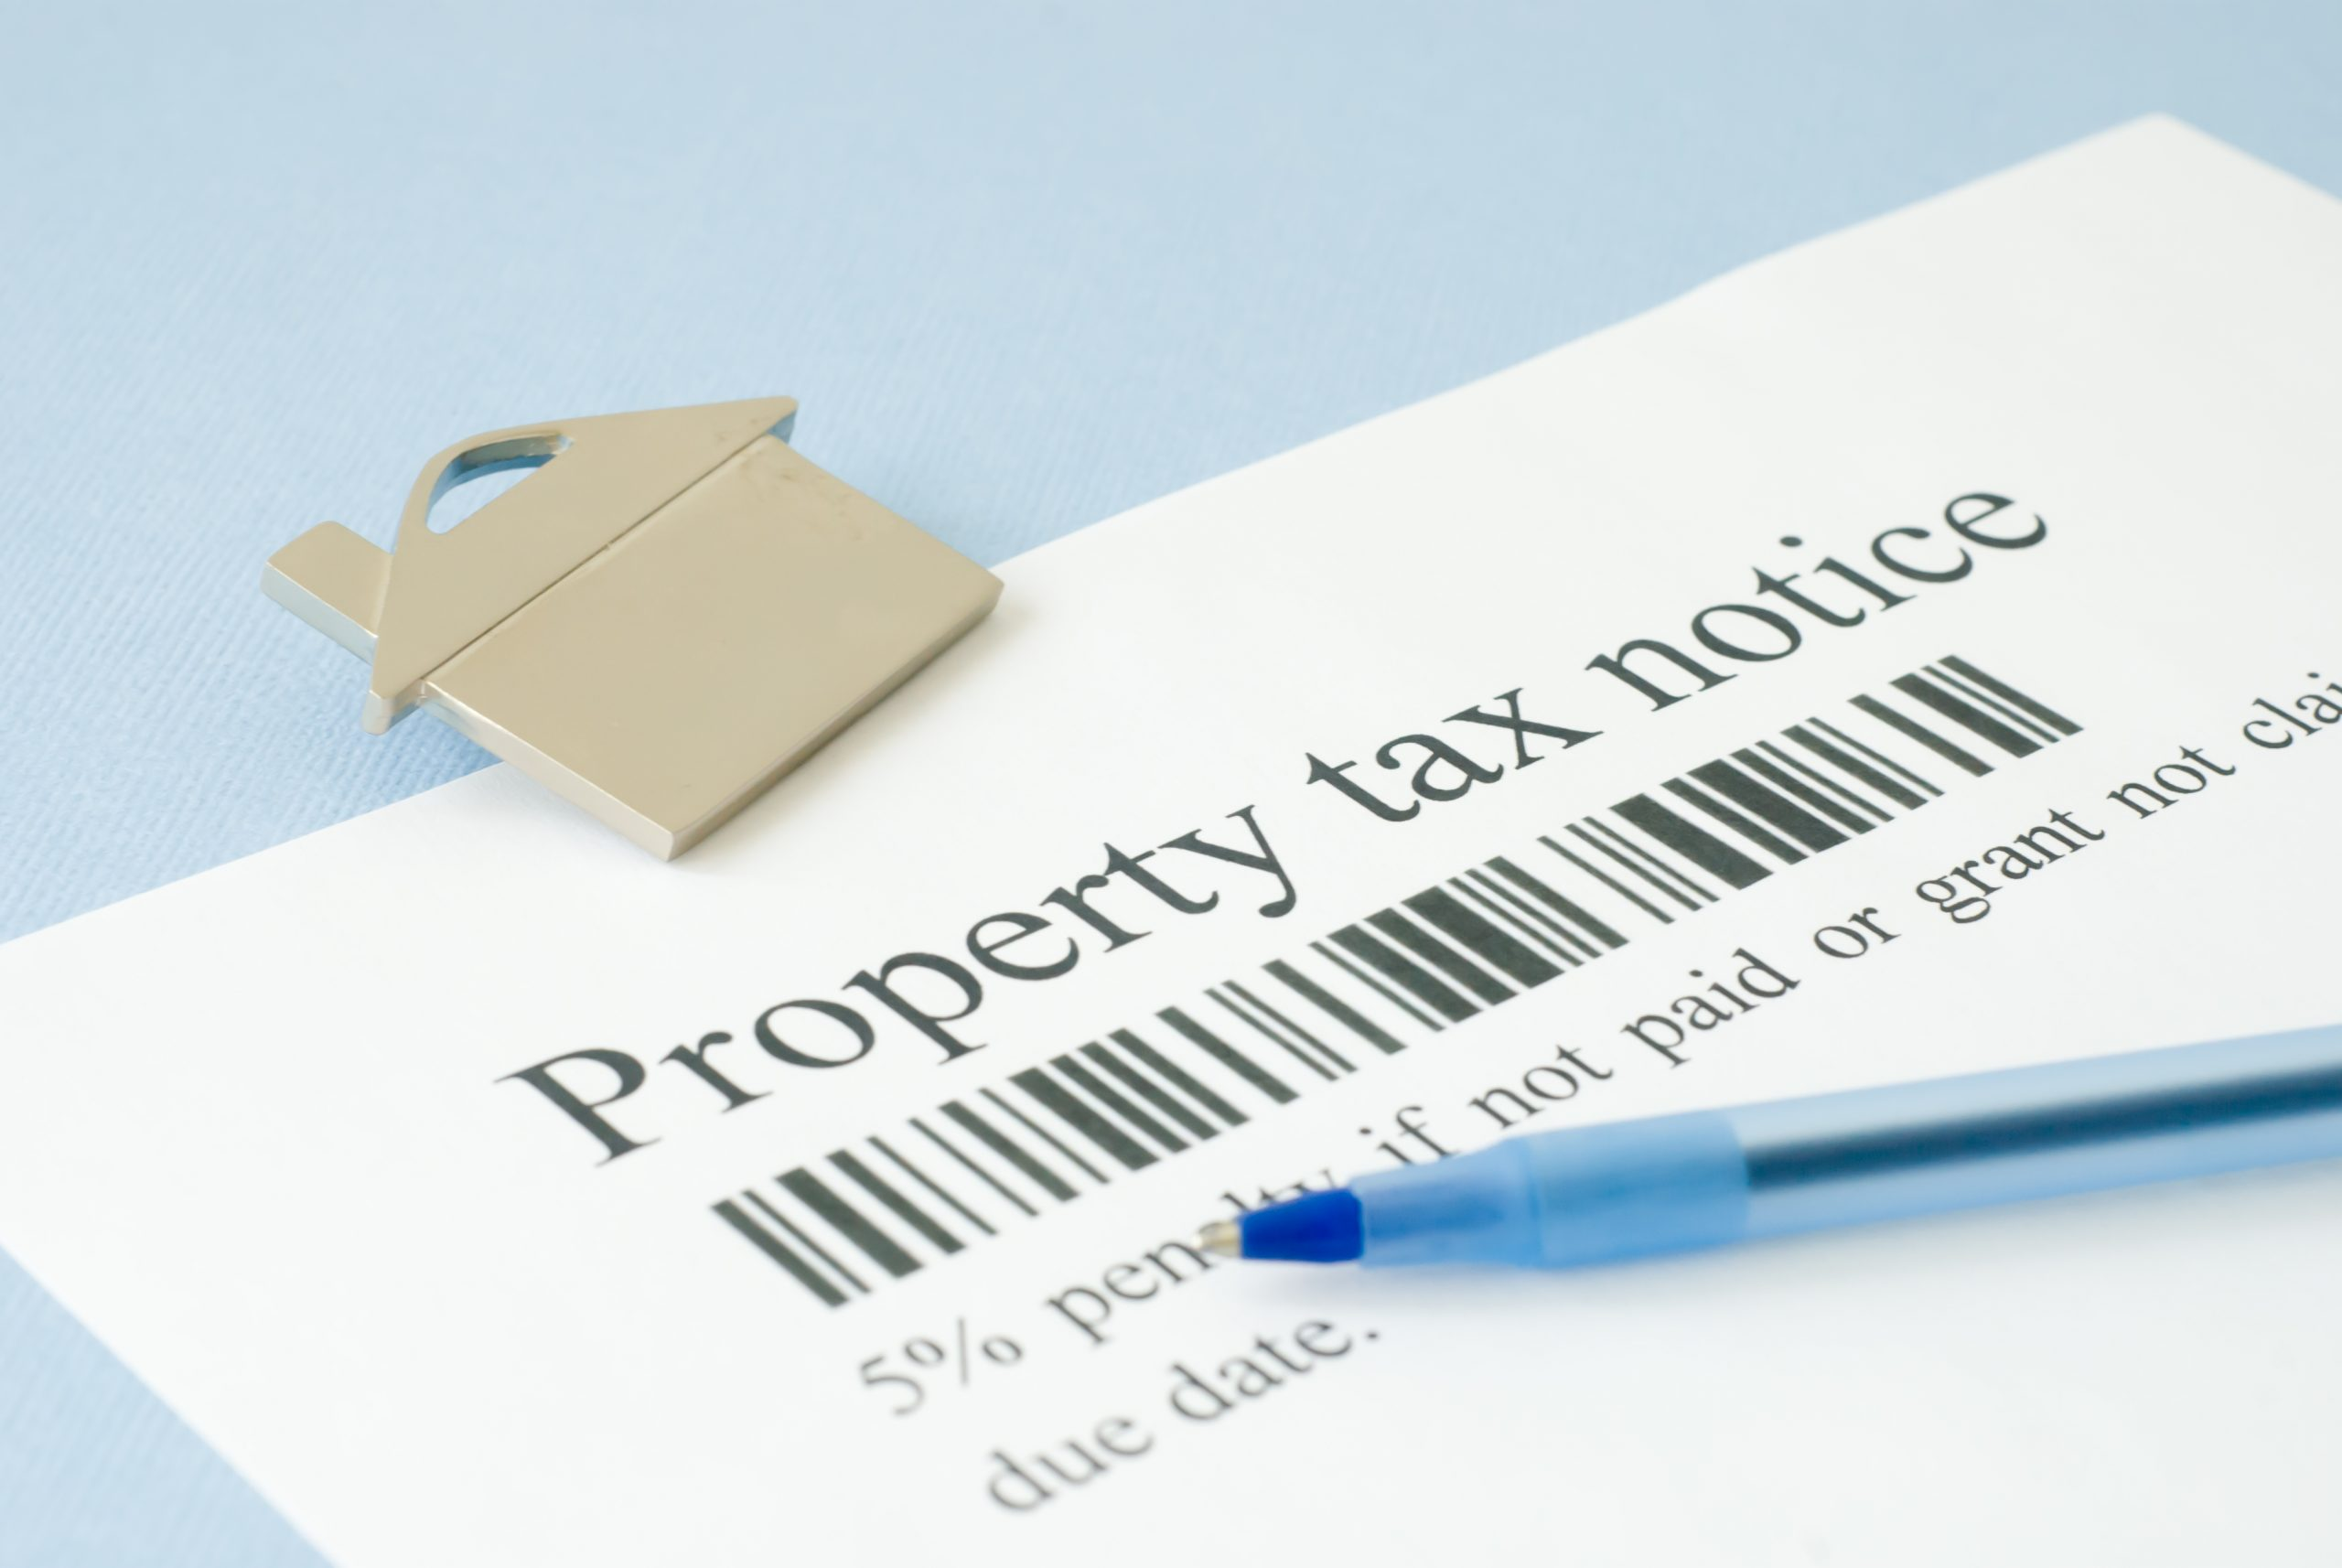 Basis For Appealing Your DC Real Property Taxes Washington DC Legal Article Featured Image by Antonoplos & Associates